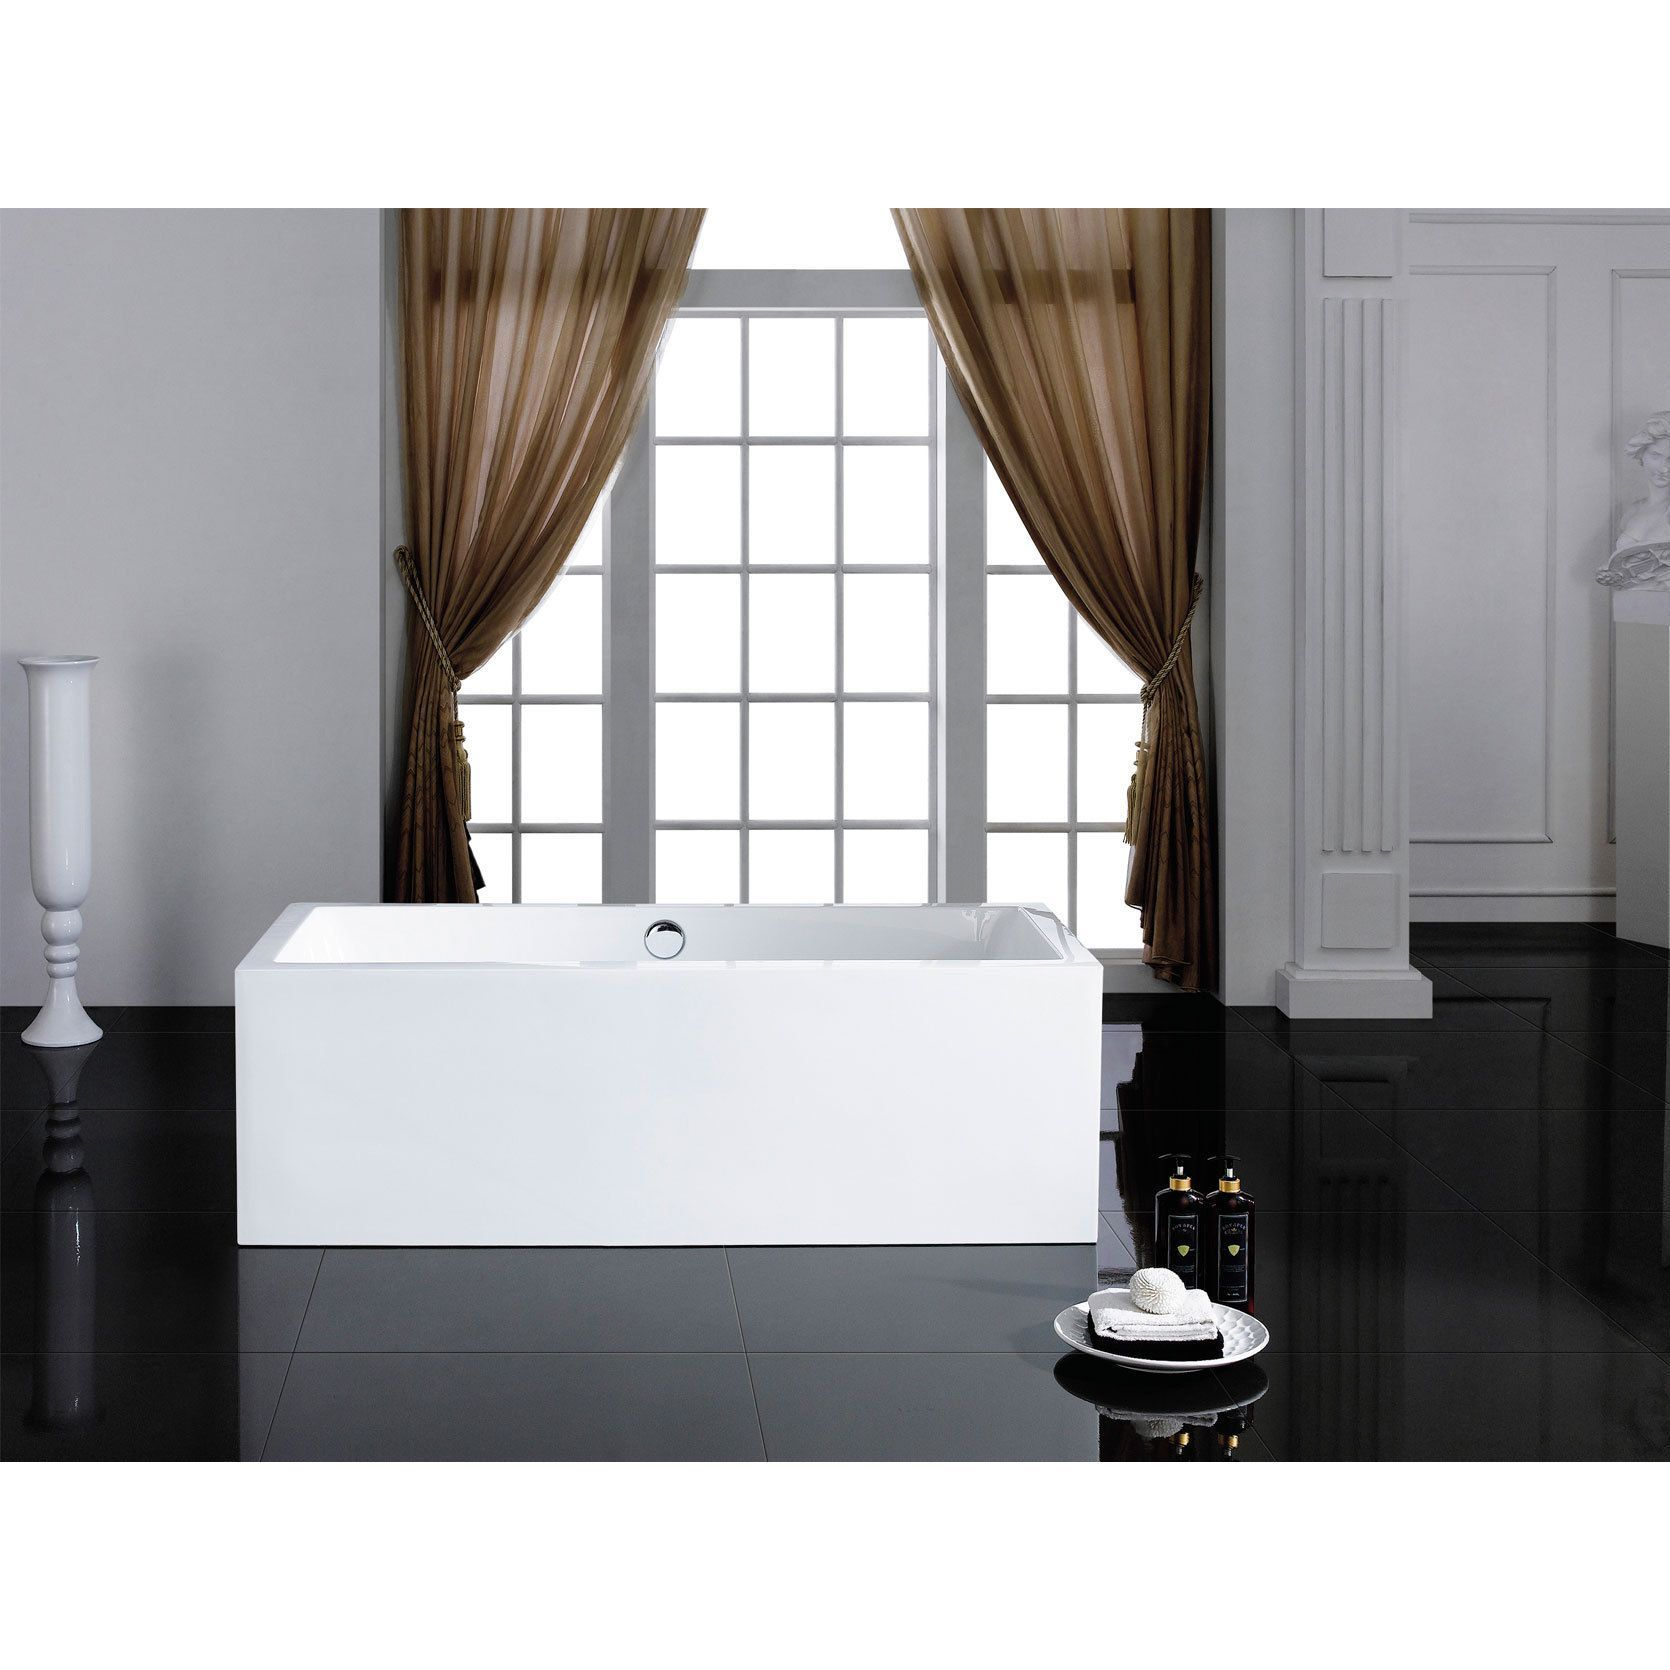 Pacific Collection Caesar 60-inch x 31-inch White Rectangle Soaking ...